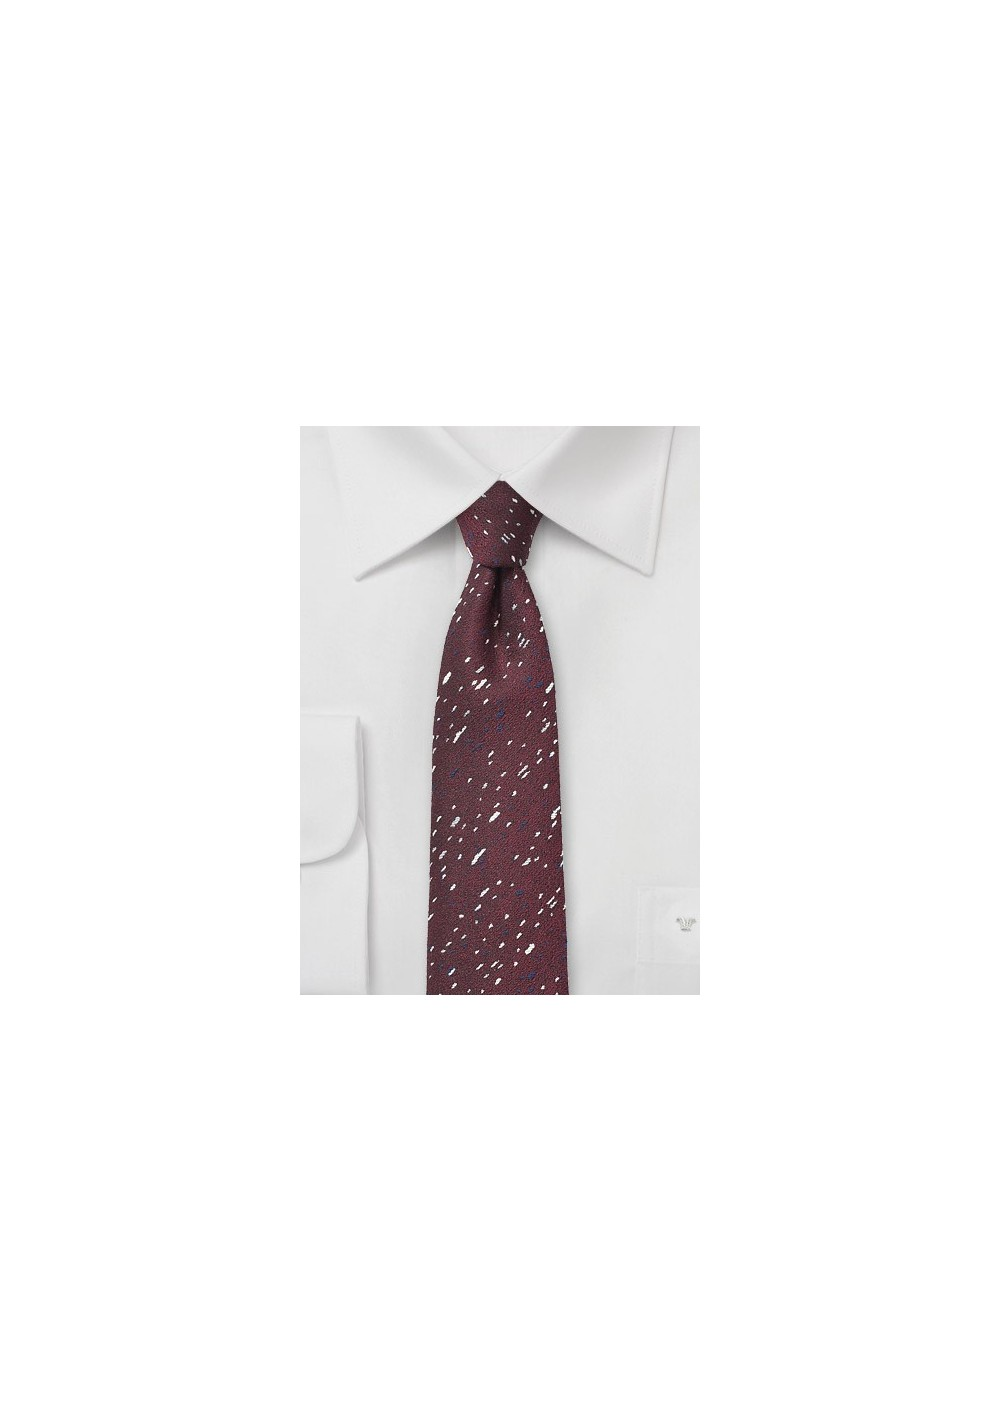 Speckled Skinny Tie in Port Red